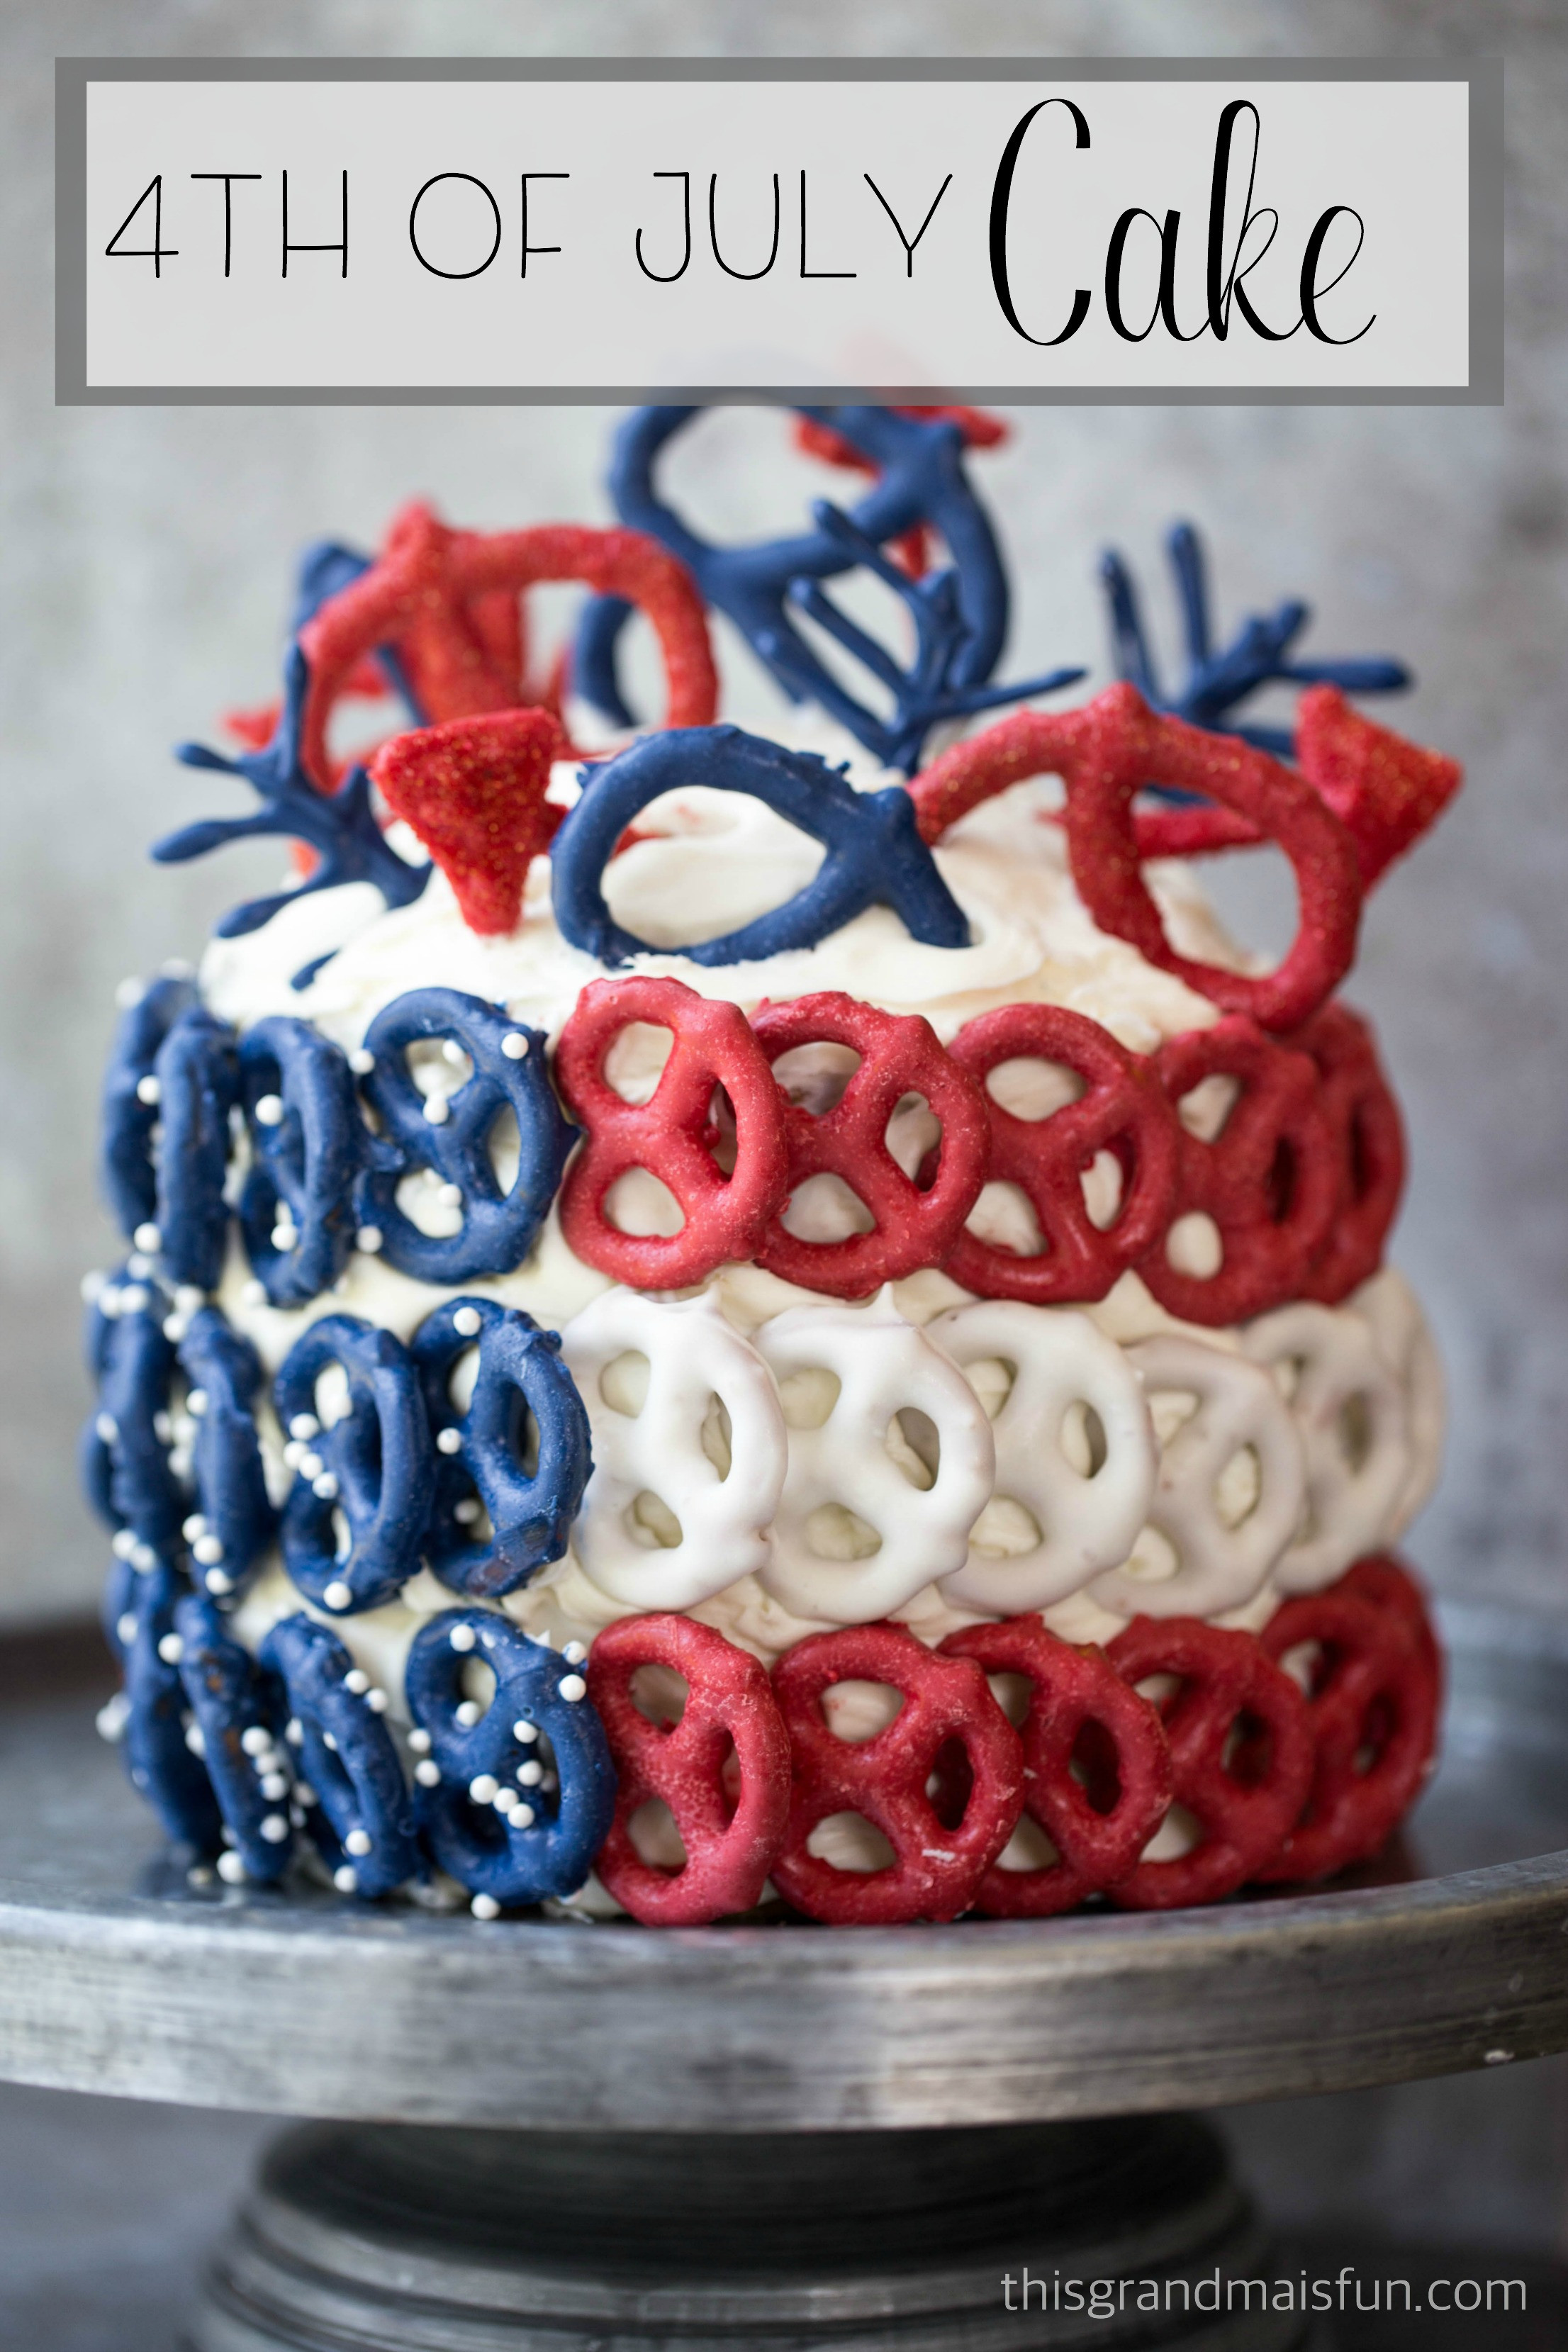 4Th Of July Cake Recipes  4th of July Cake TGIF This Grandma is Fun